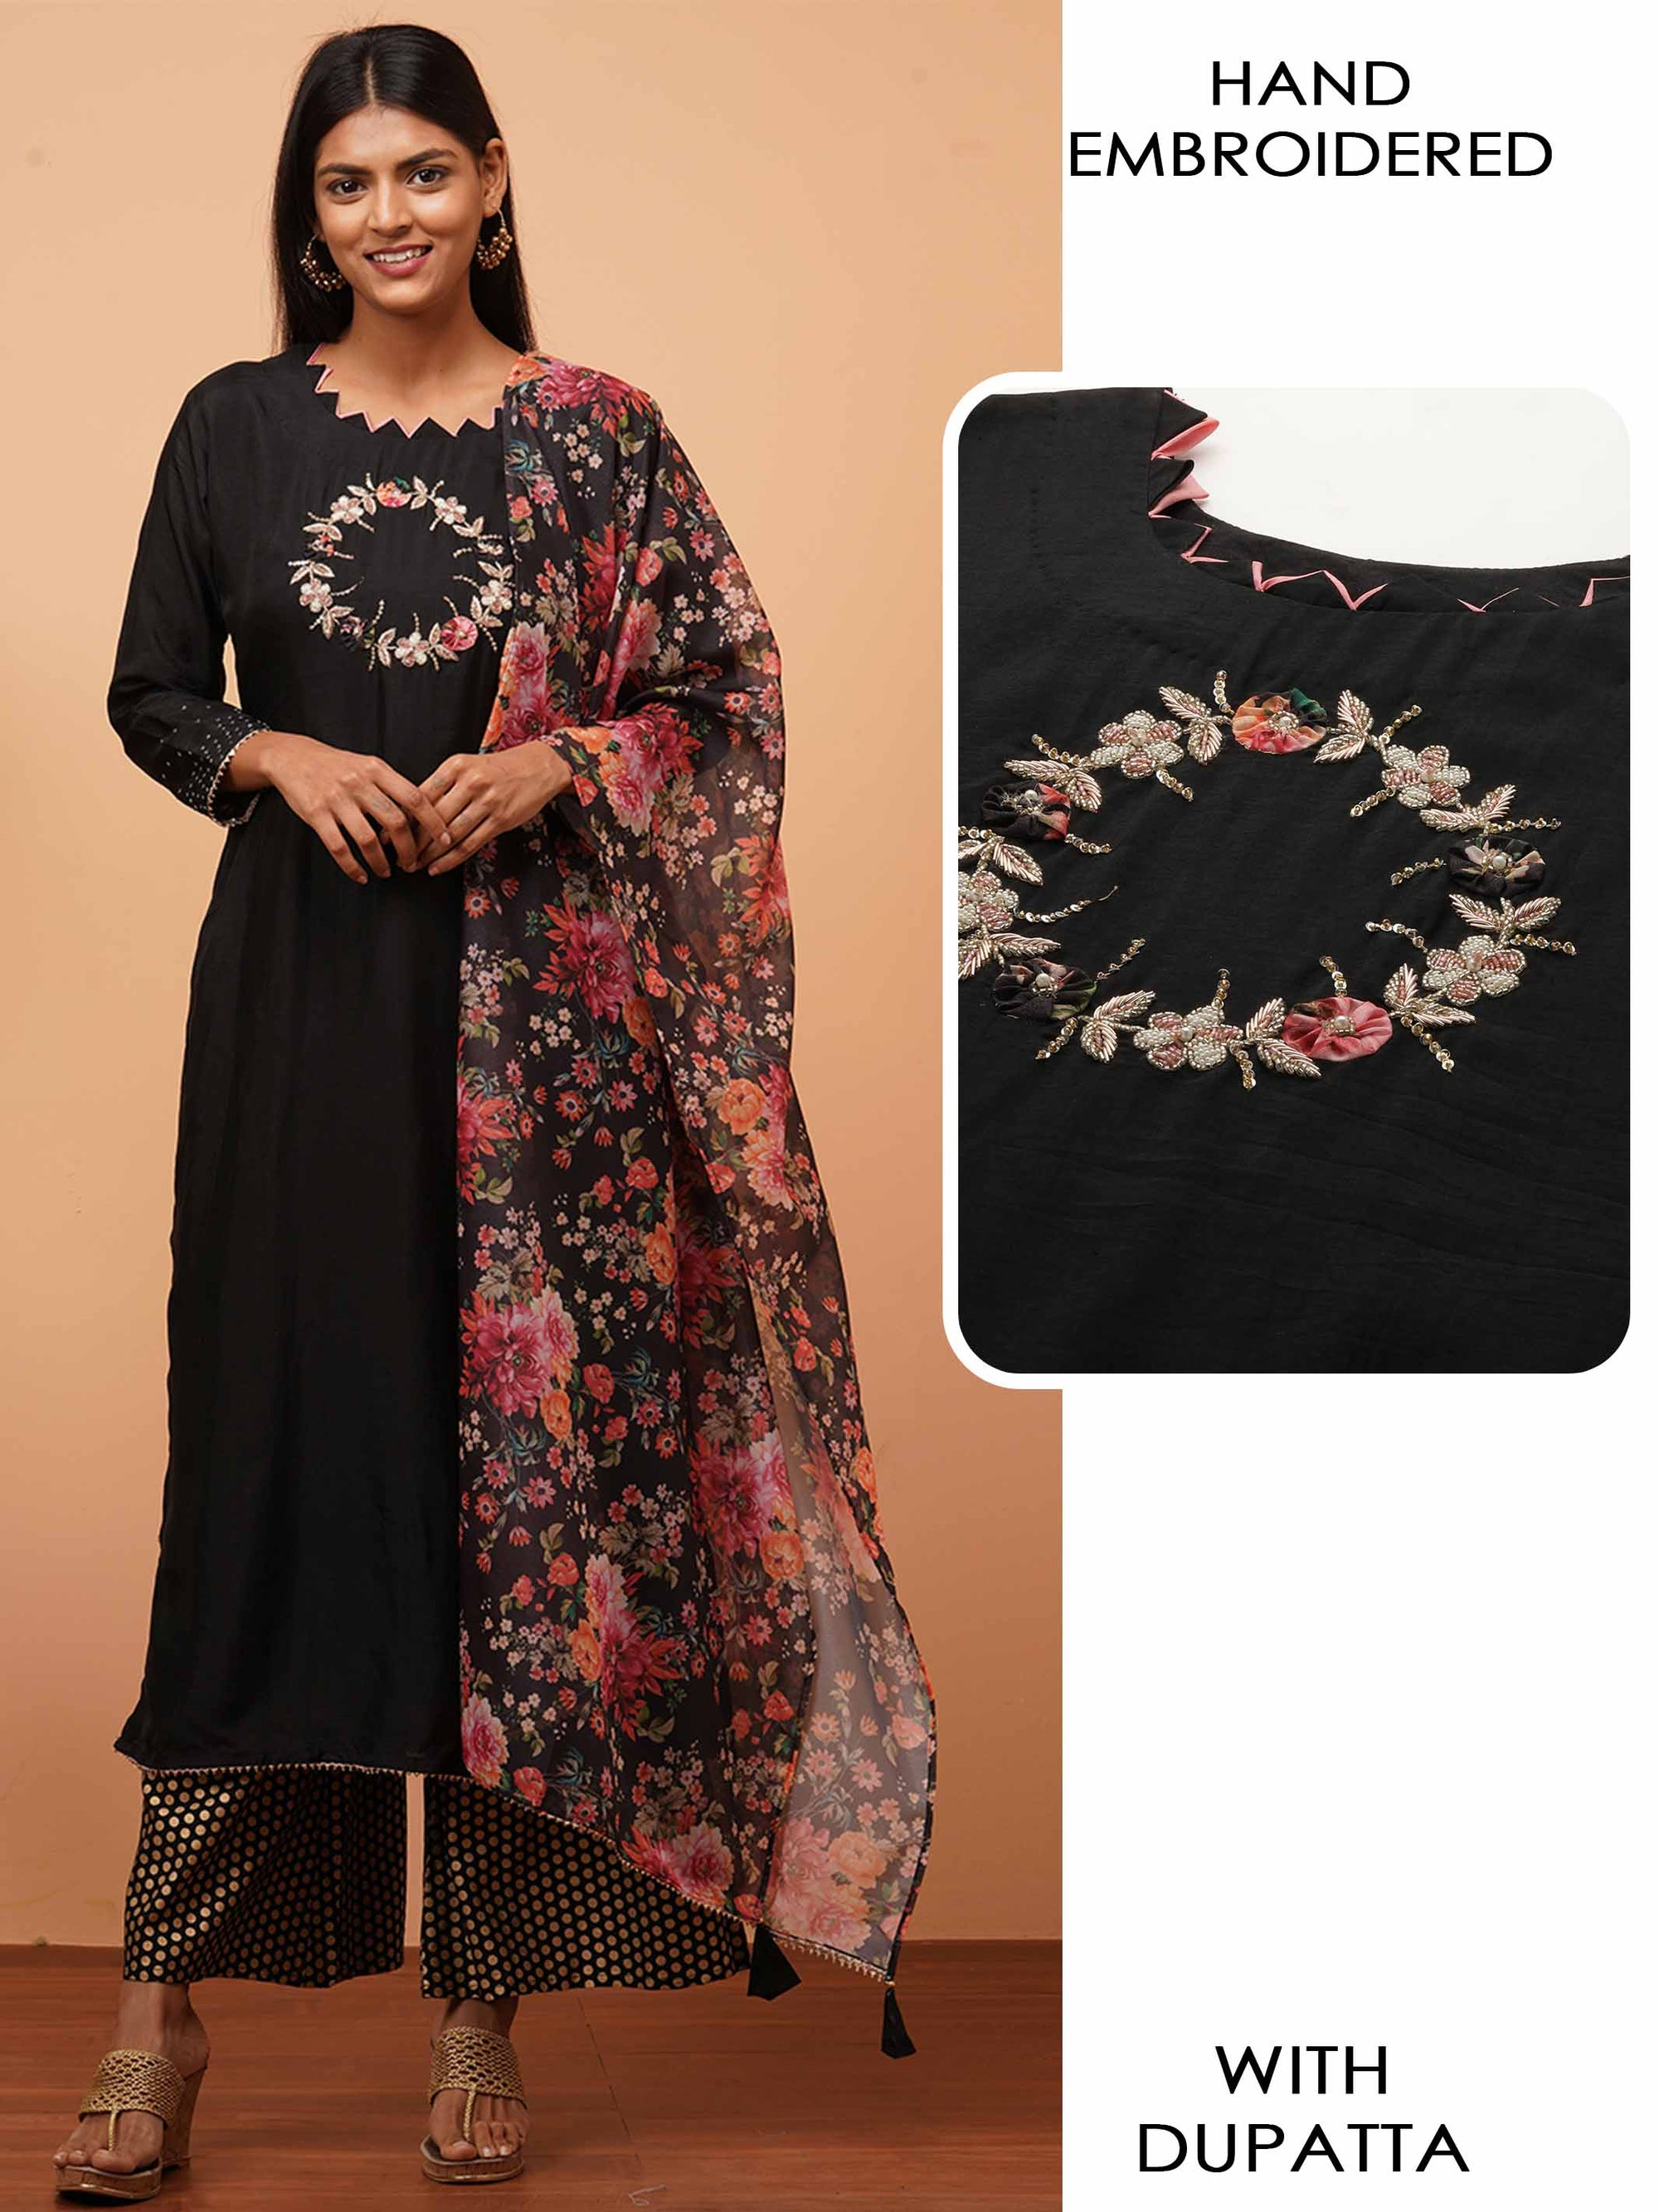 Floral Applique & Embellished Kurta with Dense Floral Printed Dupatta - Black